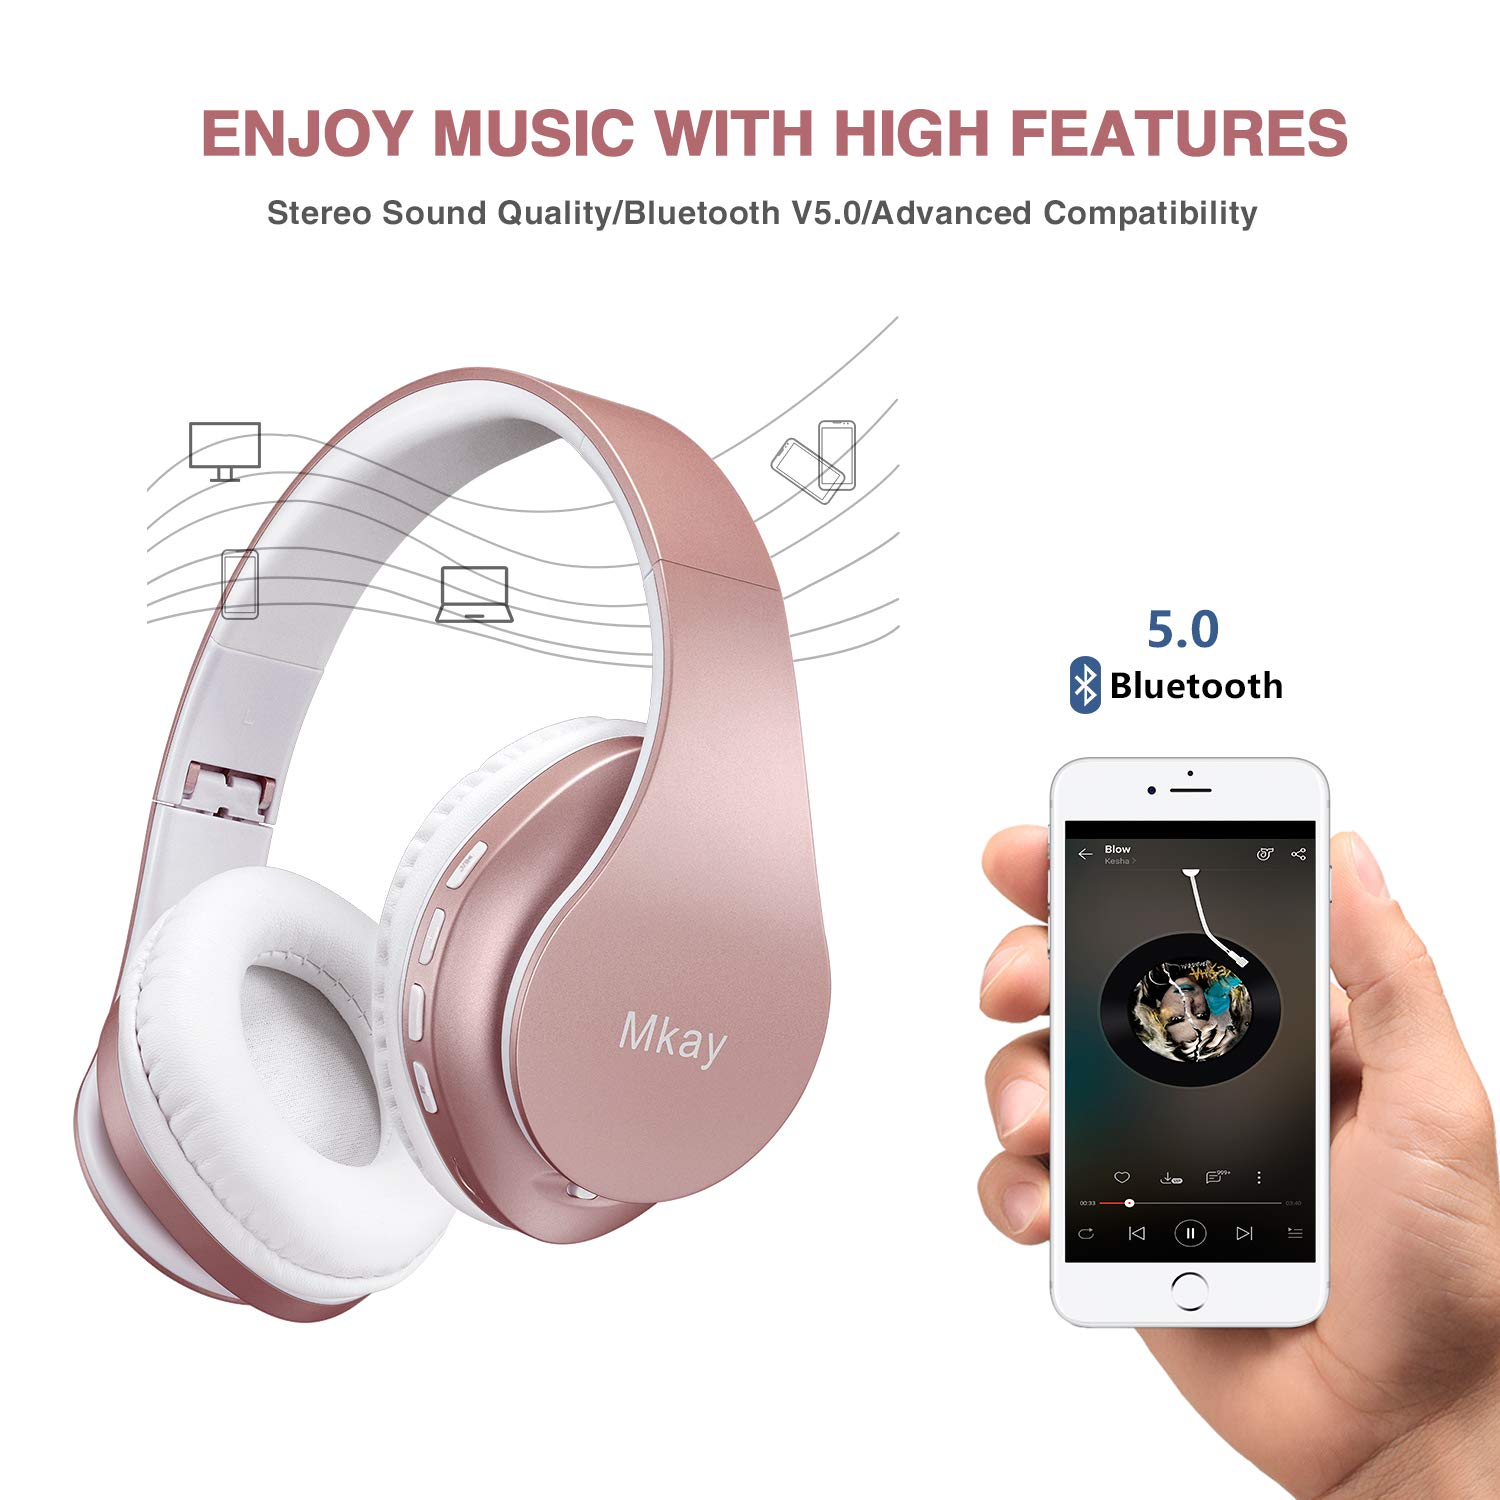 Over Ear Headset V5.0 with Microphone Foldable /& Lightweight MKay Bluetooth Headphones Wireless Support Tf Card MP3 Mode and Fm Radio for Cellphones Laptop TV-Rose Gold